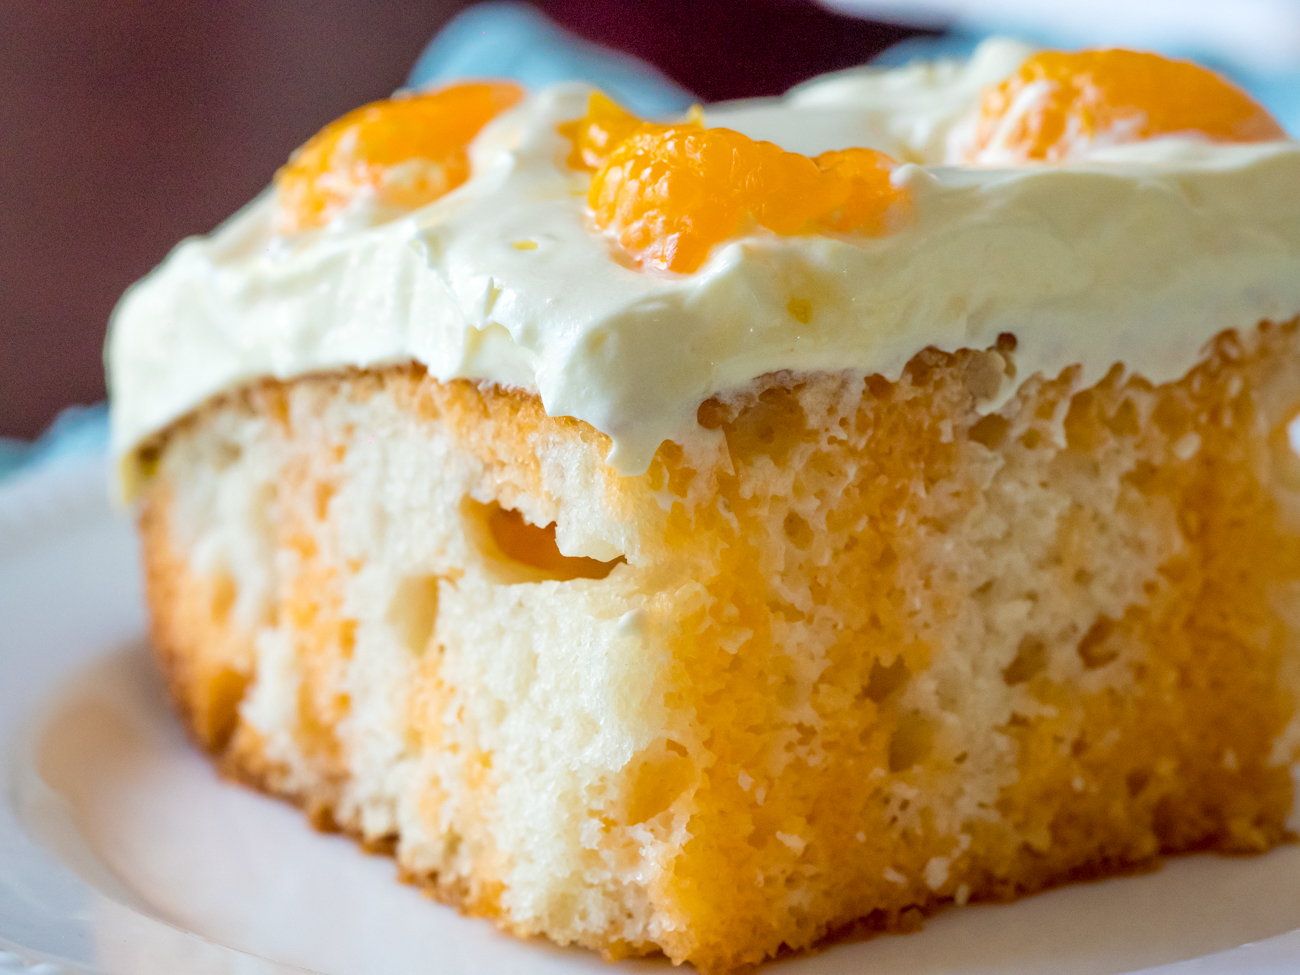 Vanilla Pudding Creamsicle Cake